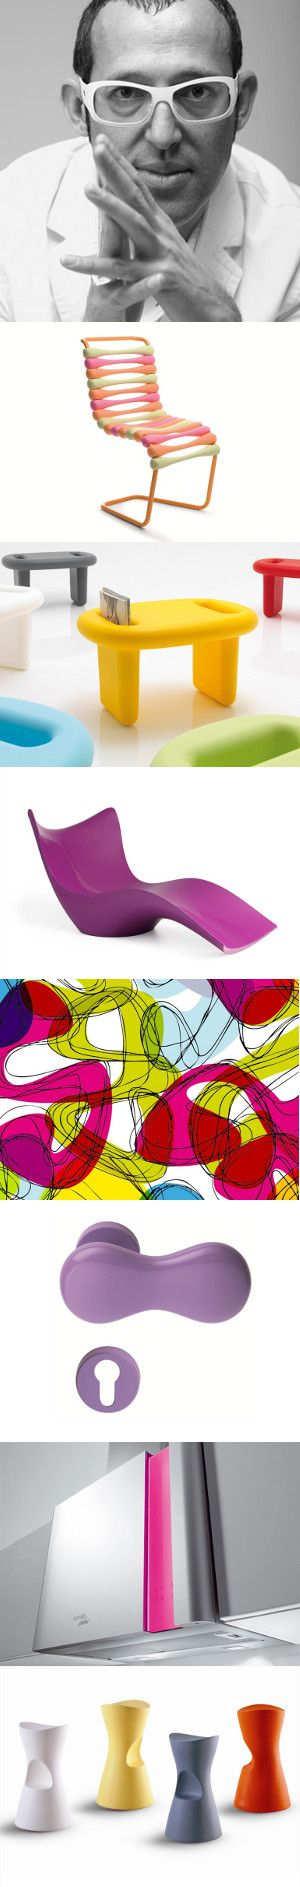 More than 150 products designed by Karim Rashid on line on #archiproducts #design #rashid